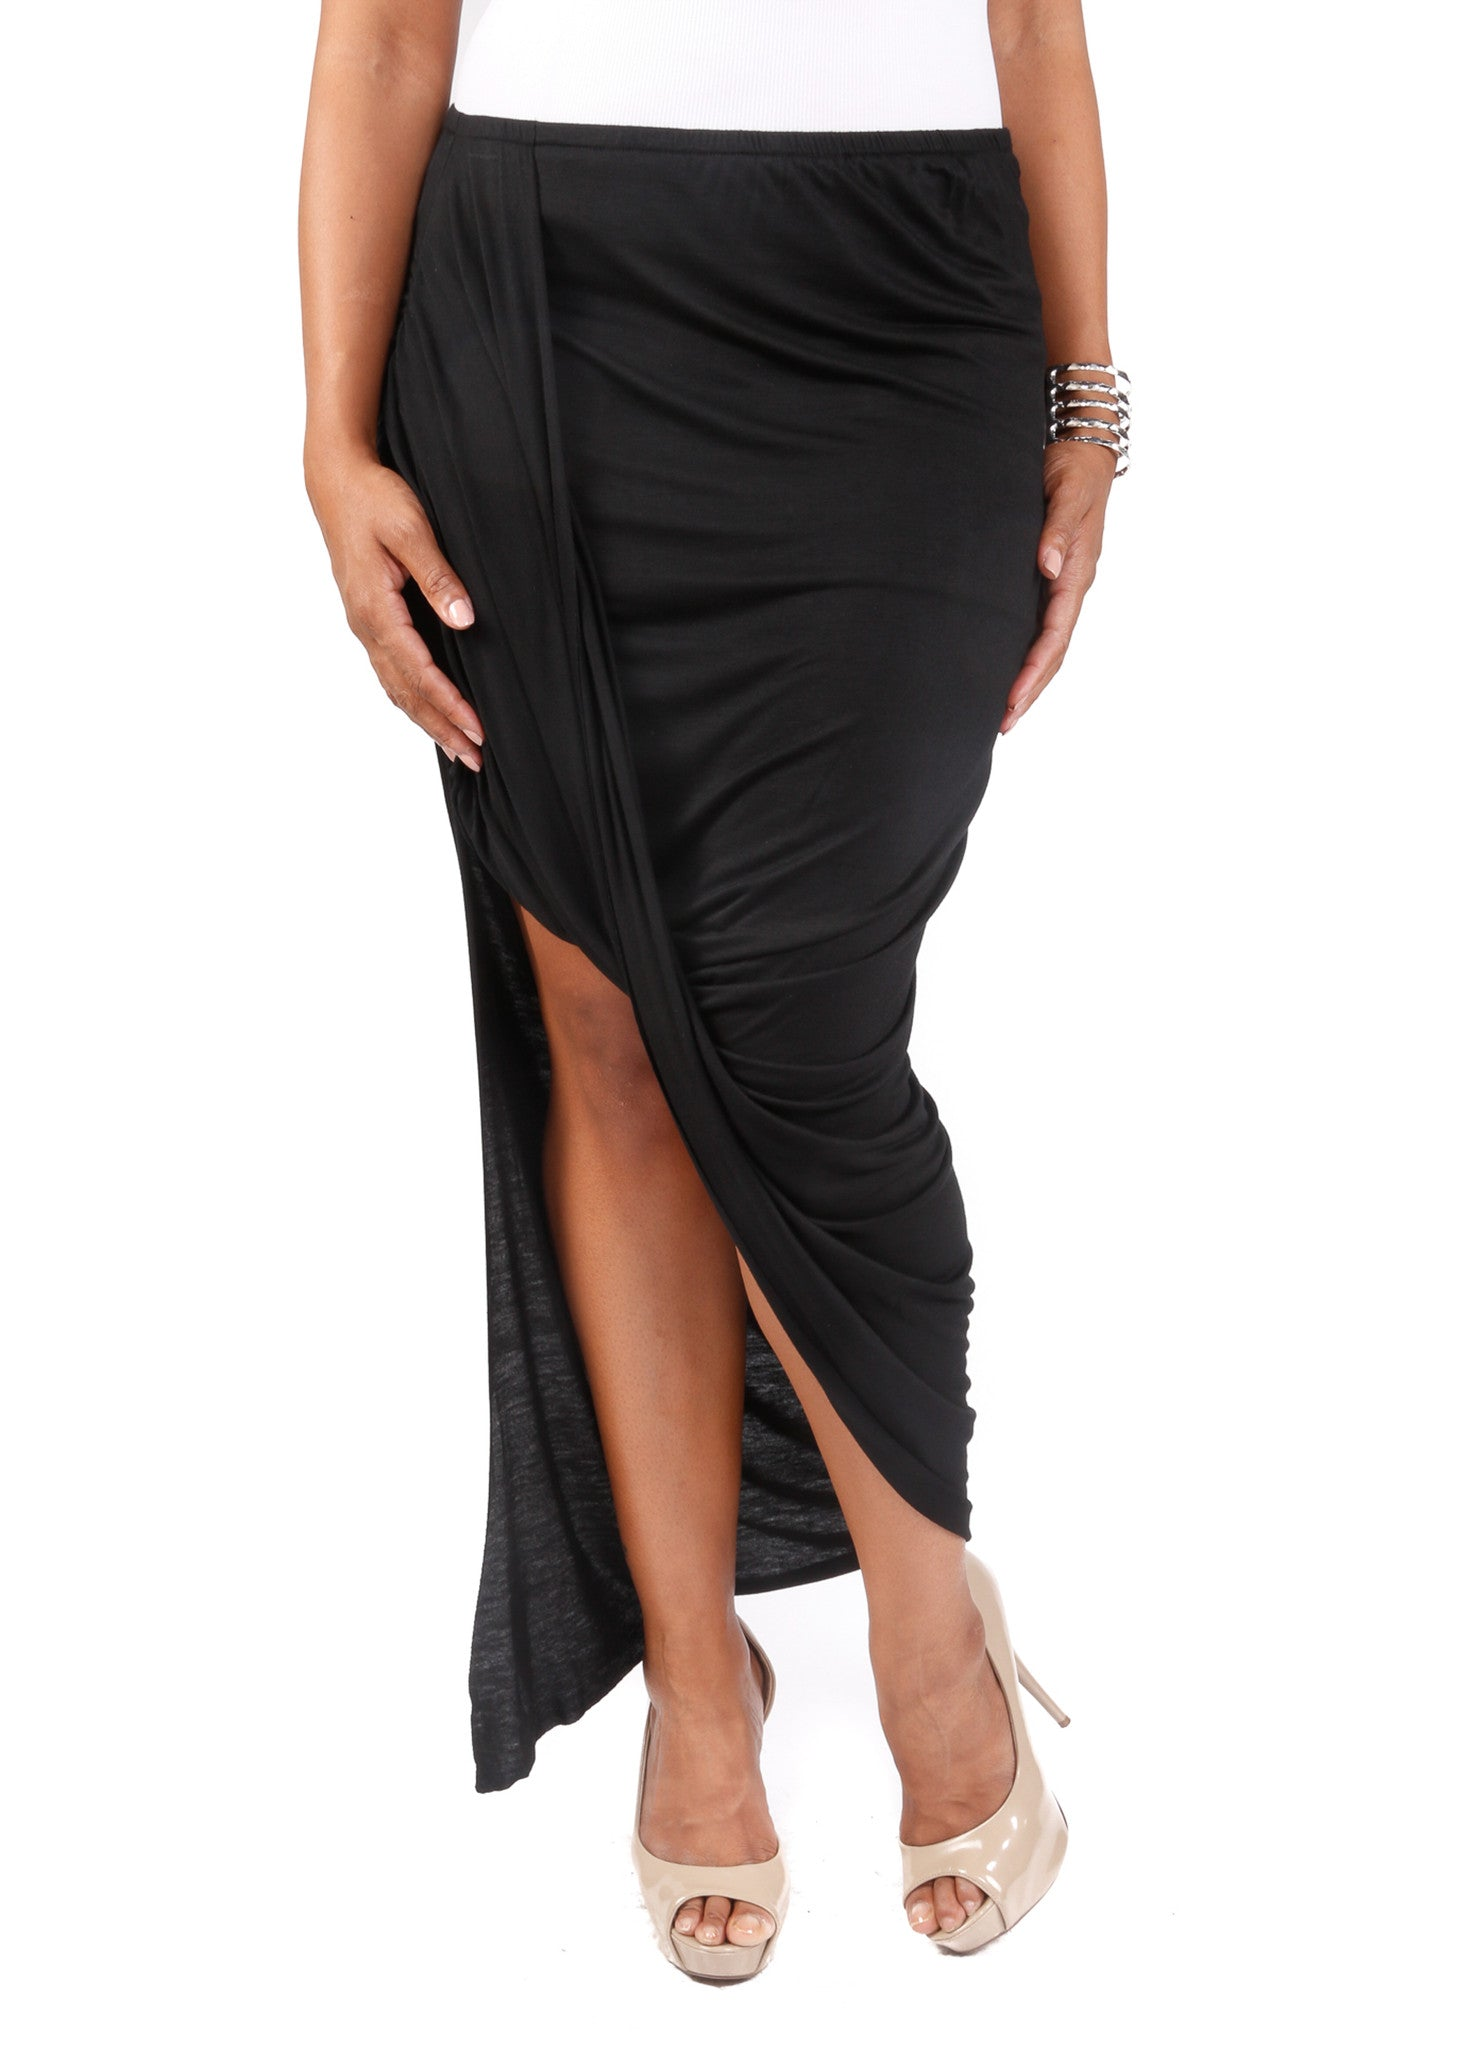 Plus Size Pretty Powerful (2 Piece Set)